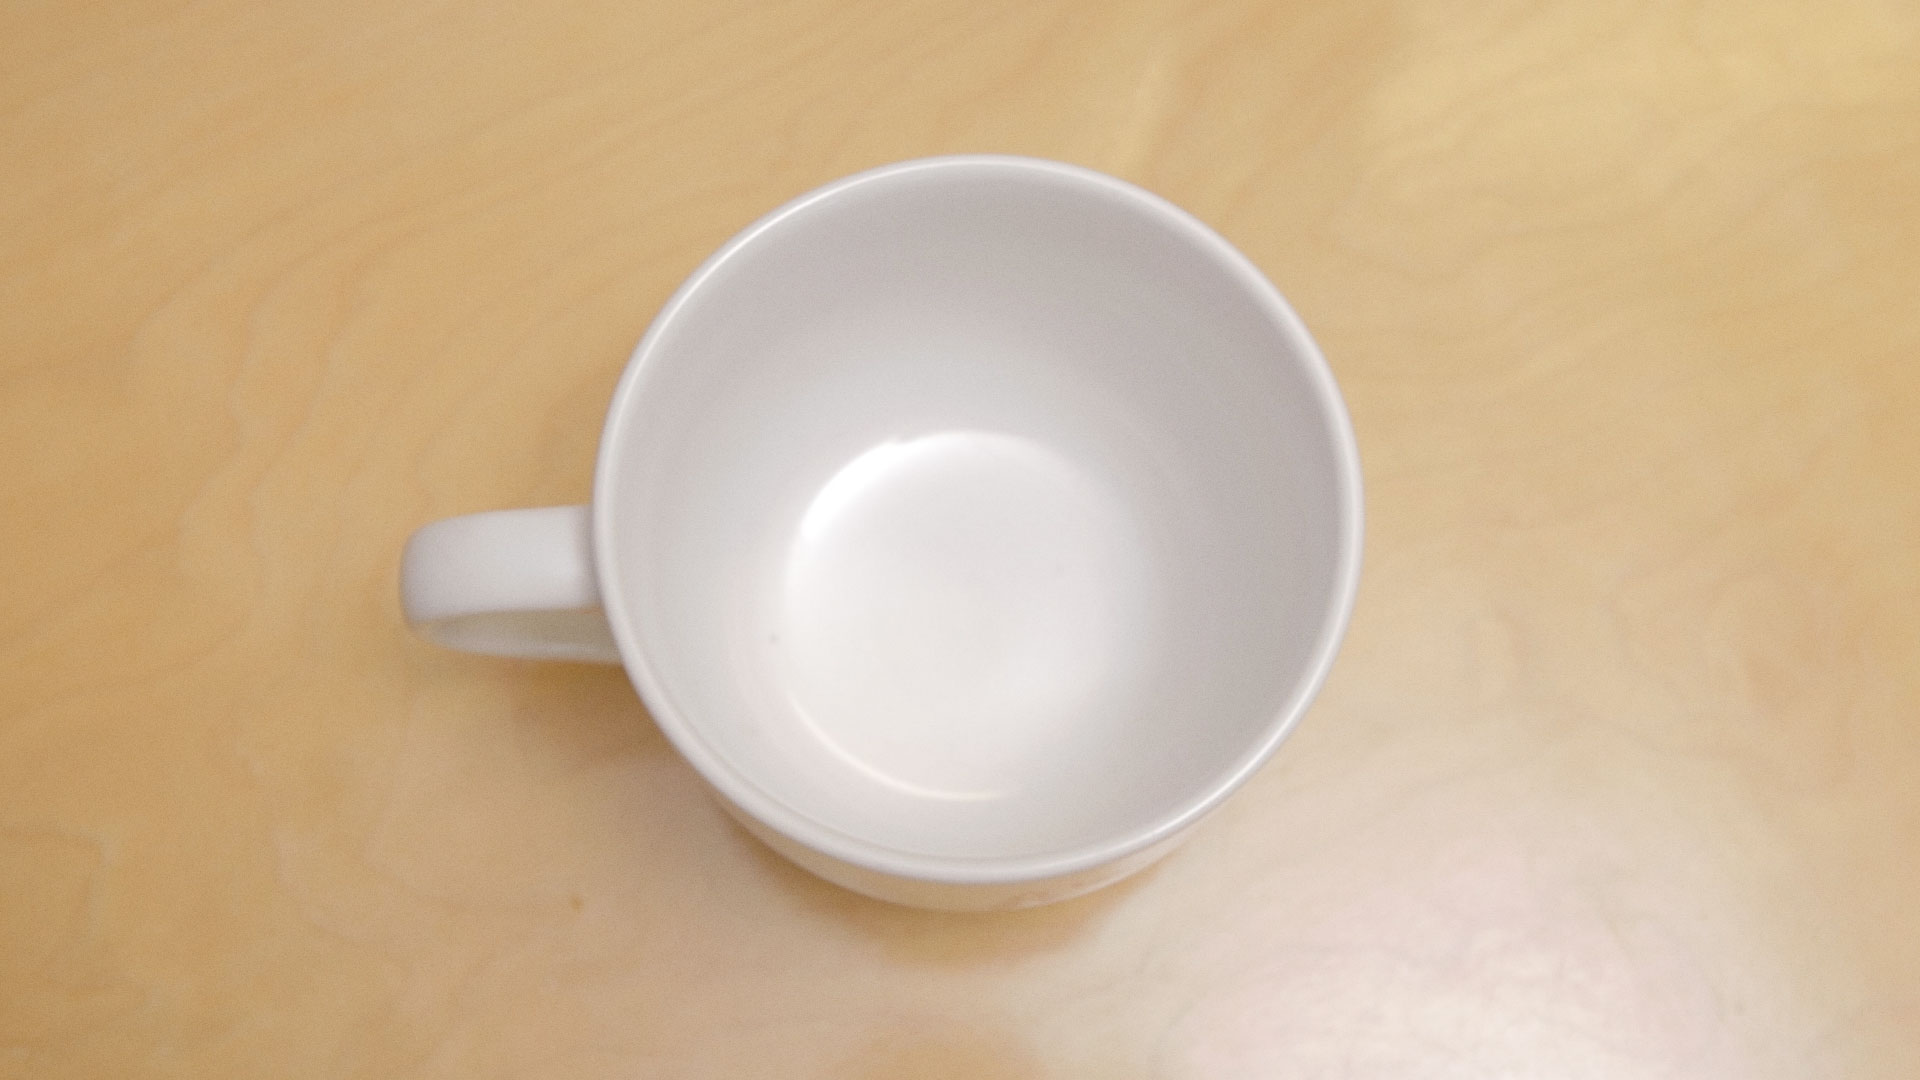 Why Different Parts of a Coffee Mug Produce Different Pitches | Quanta Magazine